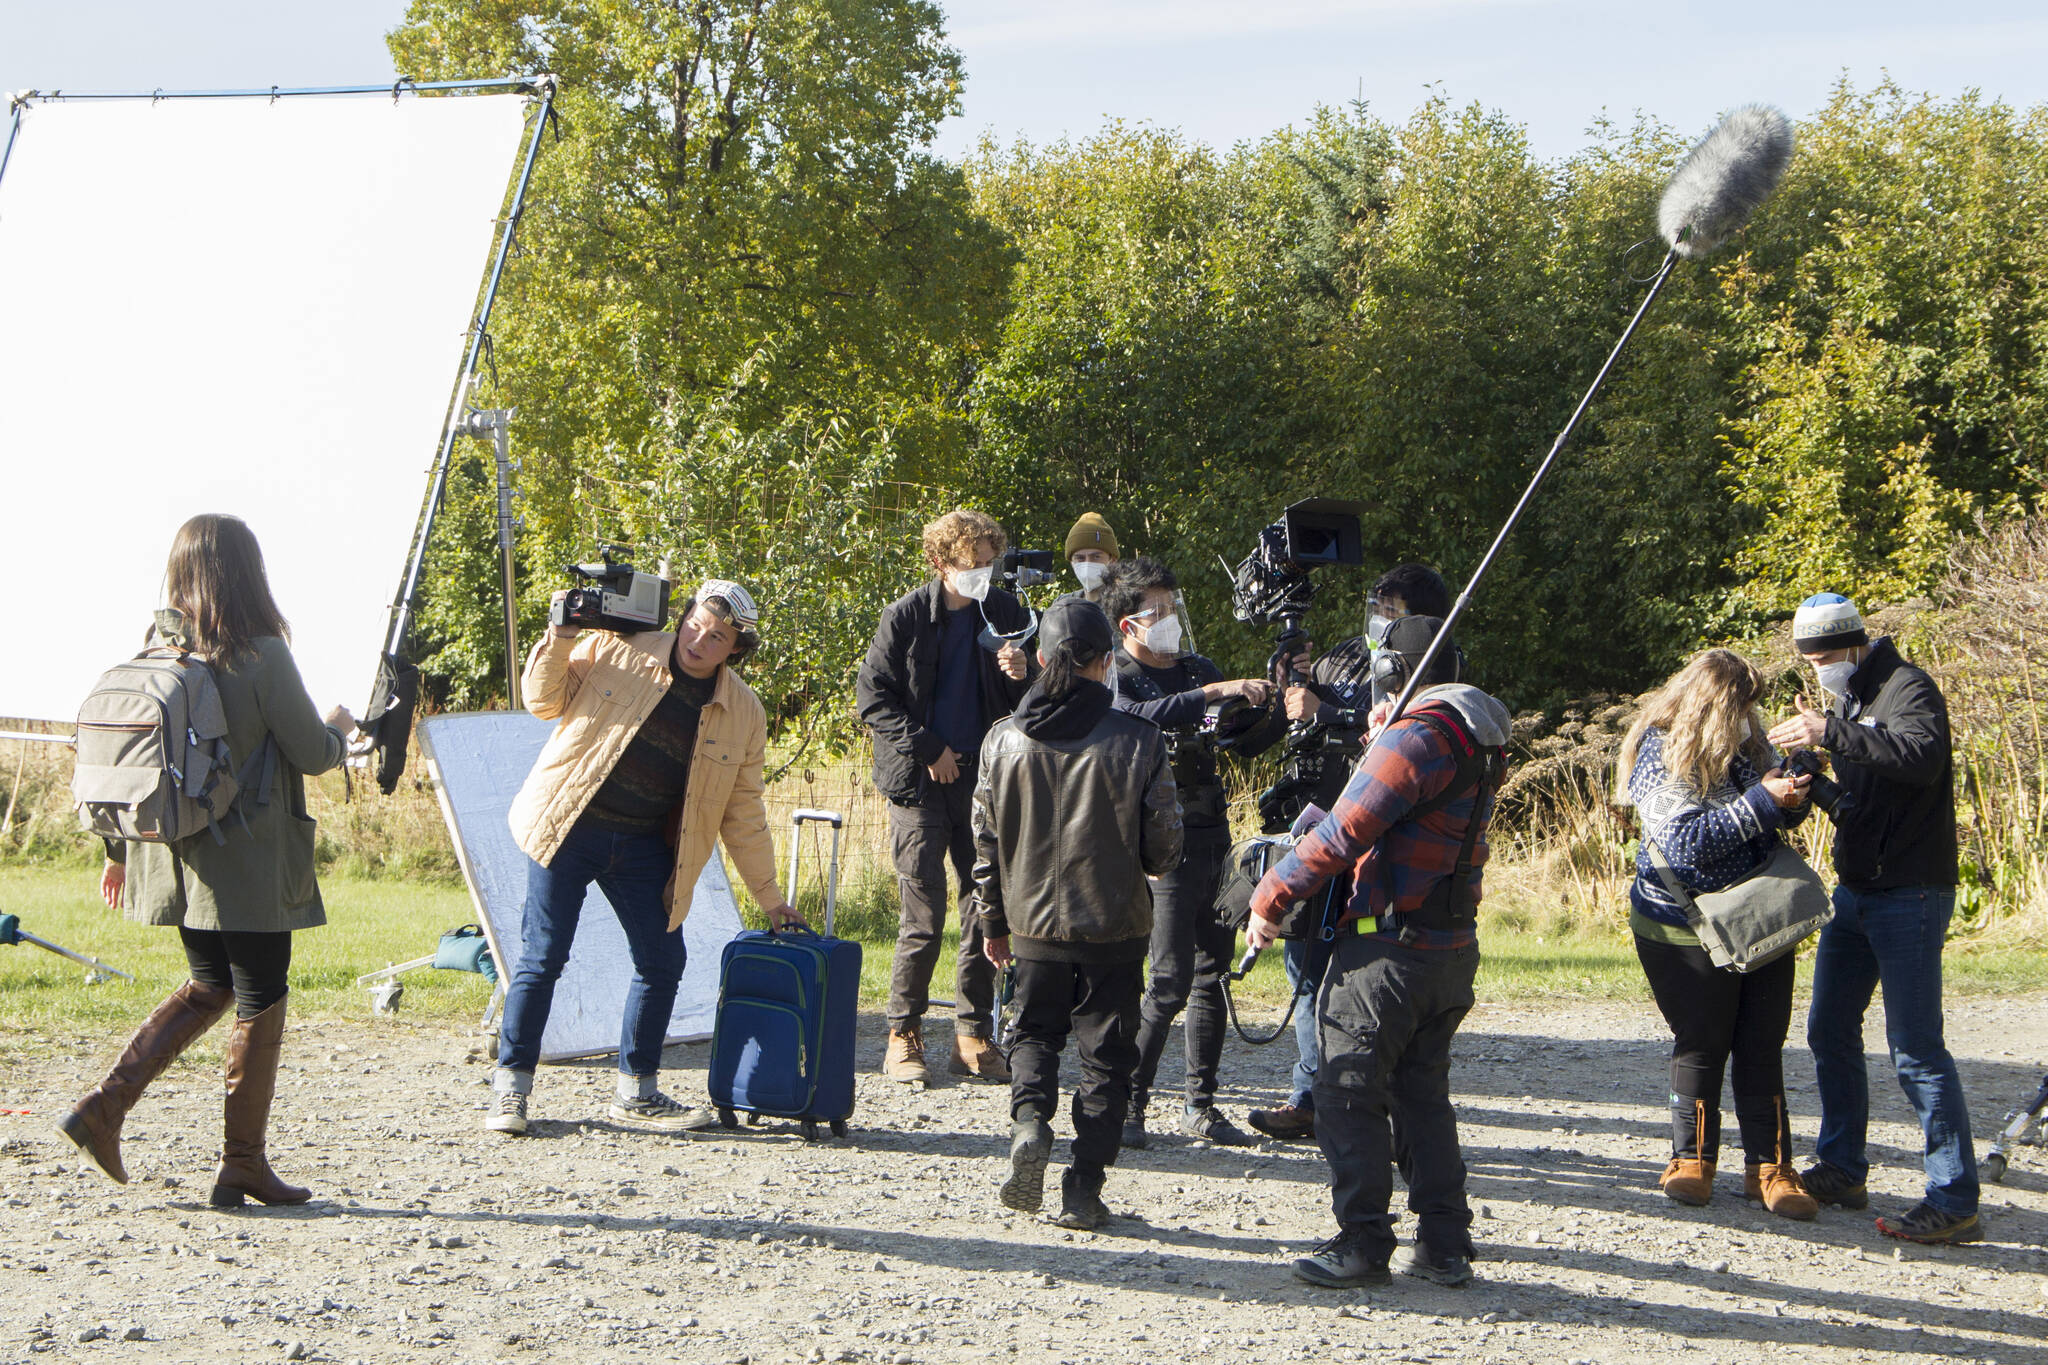 """The Cosmic Hamlet Entertainment film crew and actors reset for a scene on the set of """"Bolt from the Blue"""" at the Kilcher Homestead on Sept. 28. (Photo by Sarah Knapp/Homer News)"""